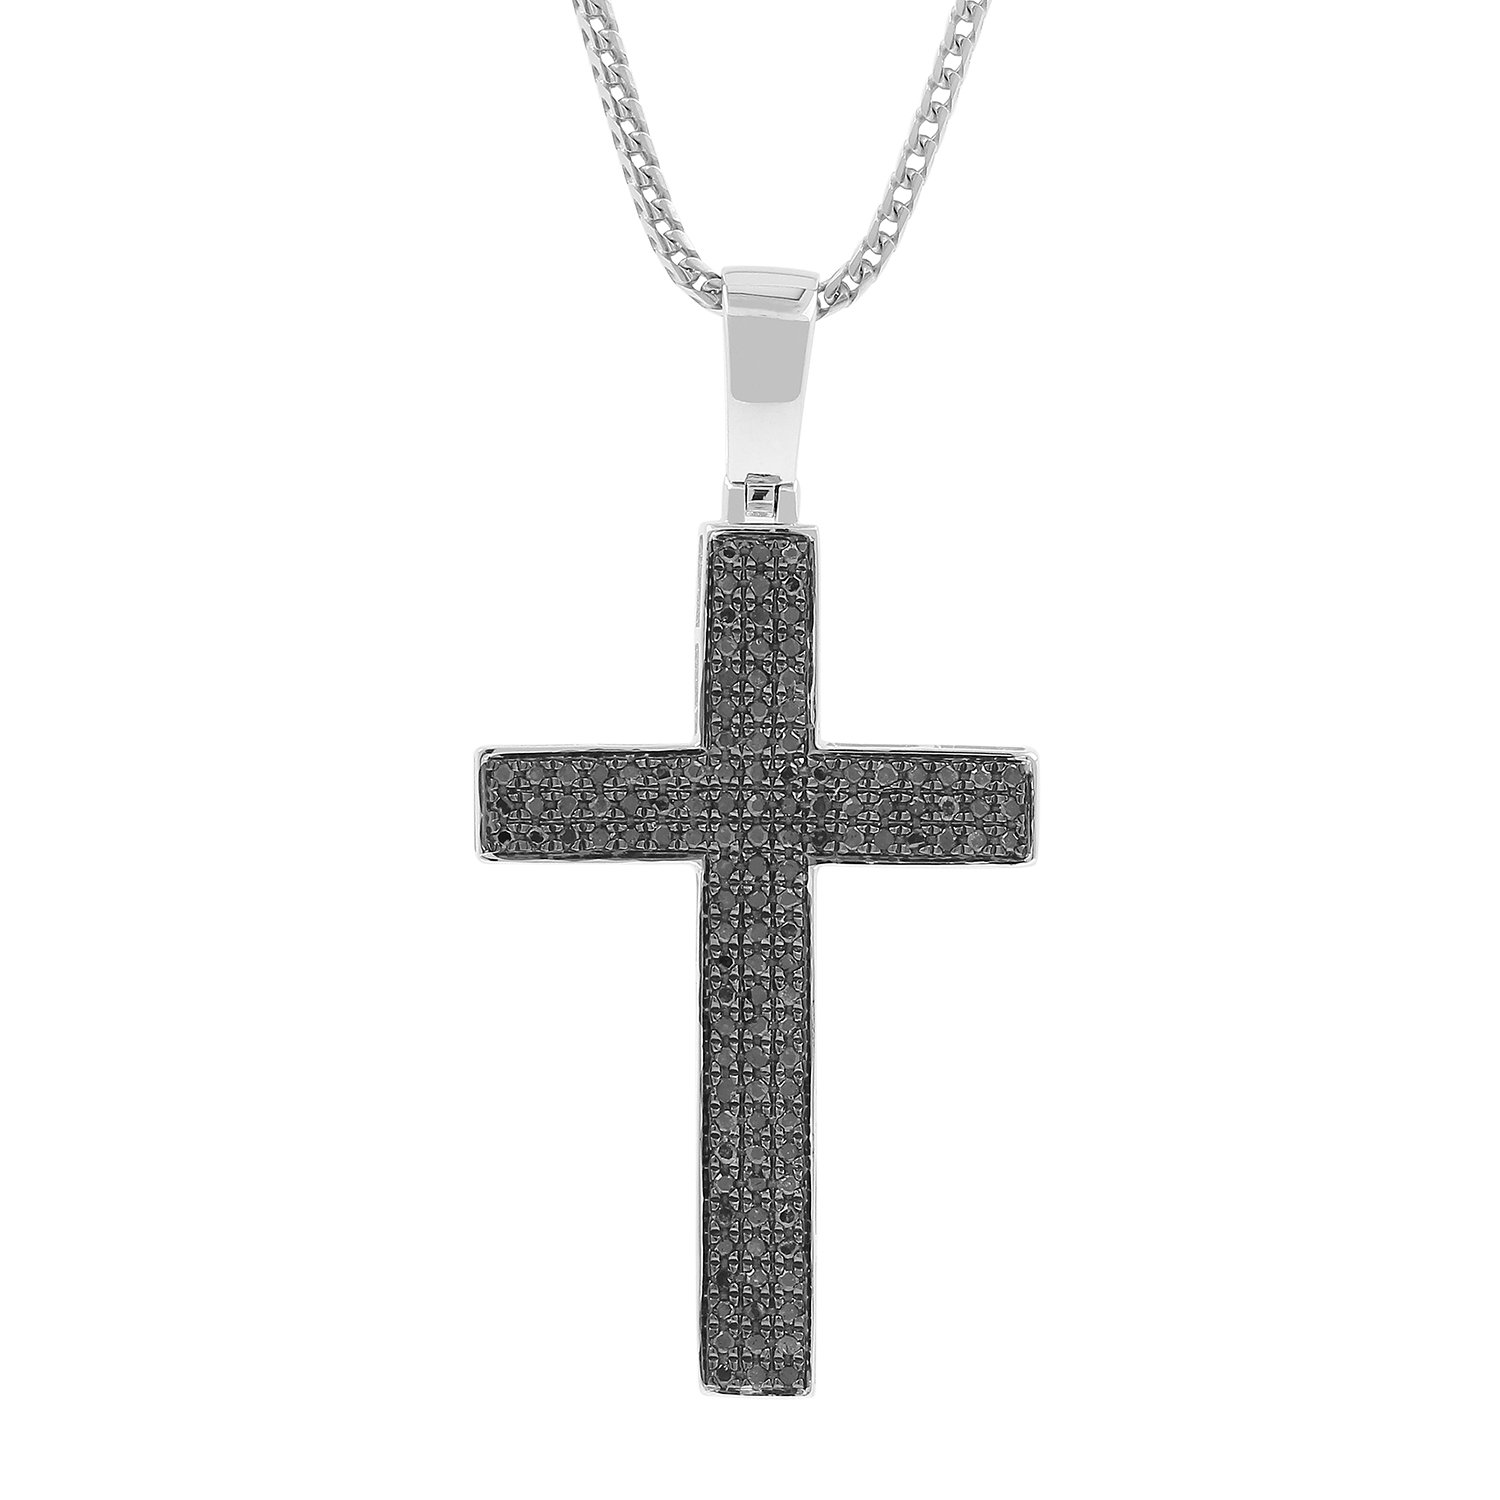 0.54ct Black Diamond Pave 3 Row Mens Hip Hop Cross Pendant Necklace in 925 Silver